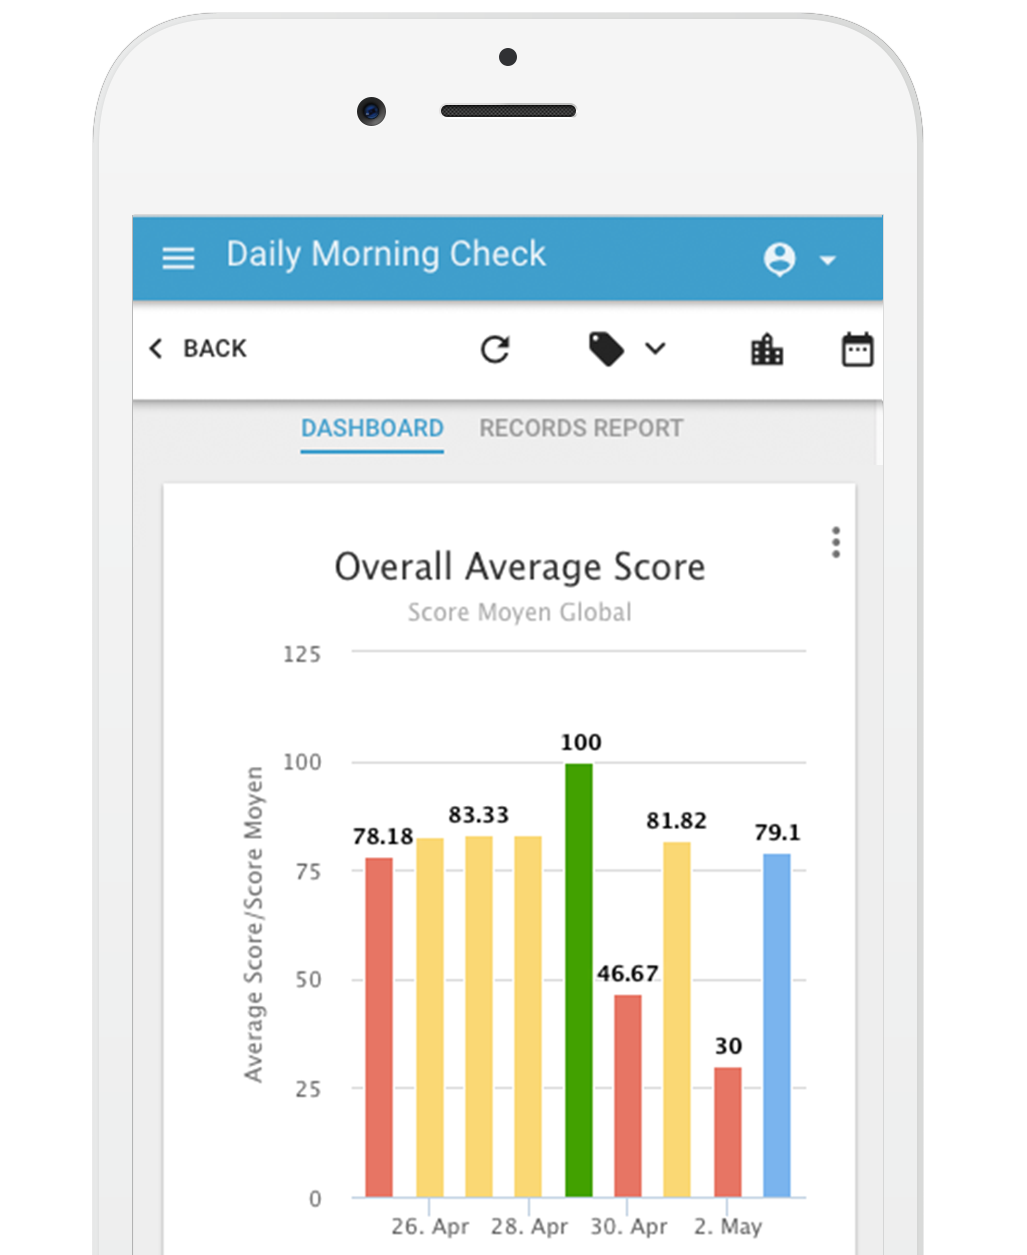 View results with robust, real-time reporting